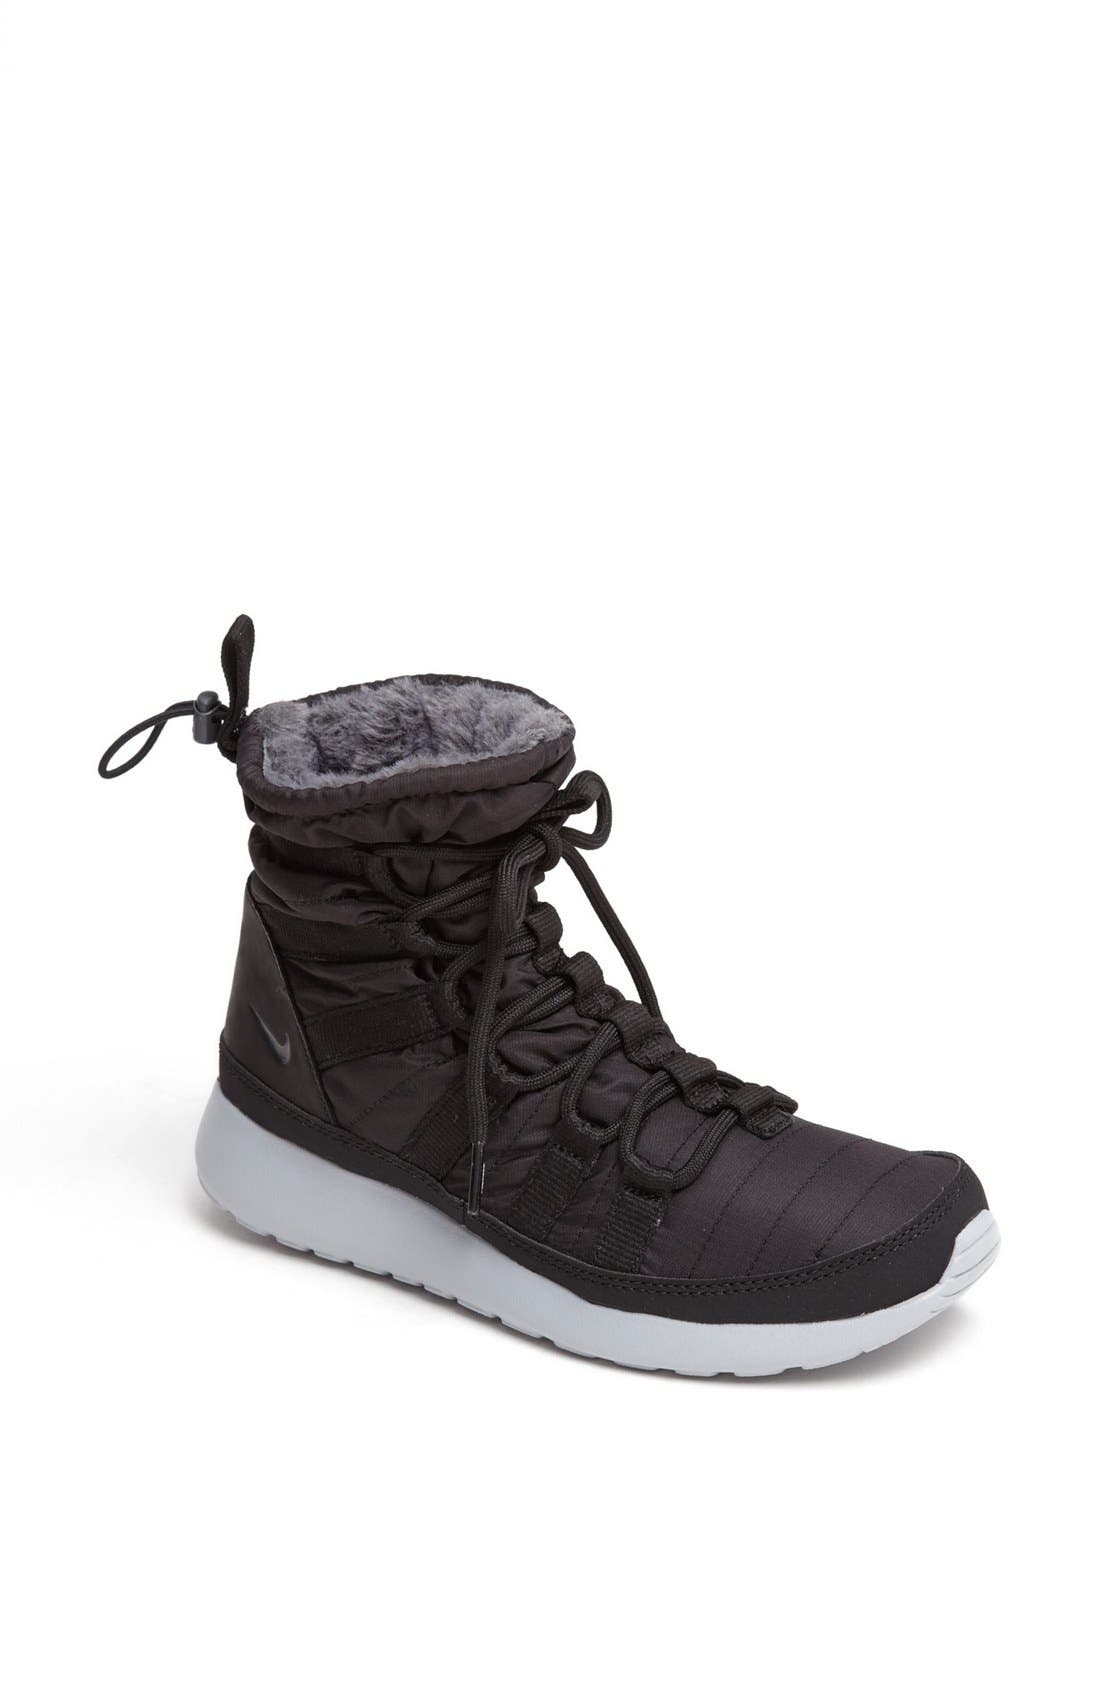 'Roshe Run' Sneaker Boot,                             Main thumbnail 1, color,                             002